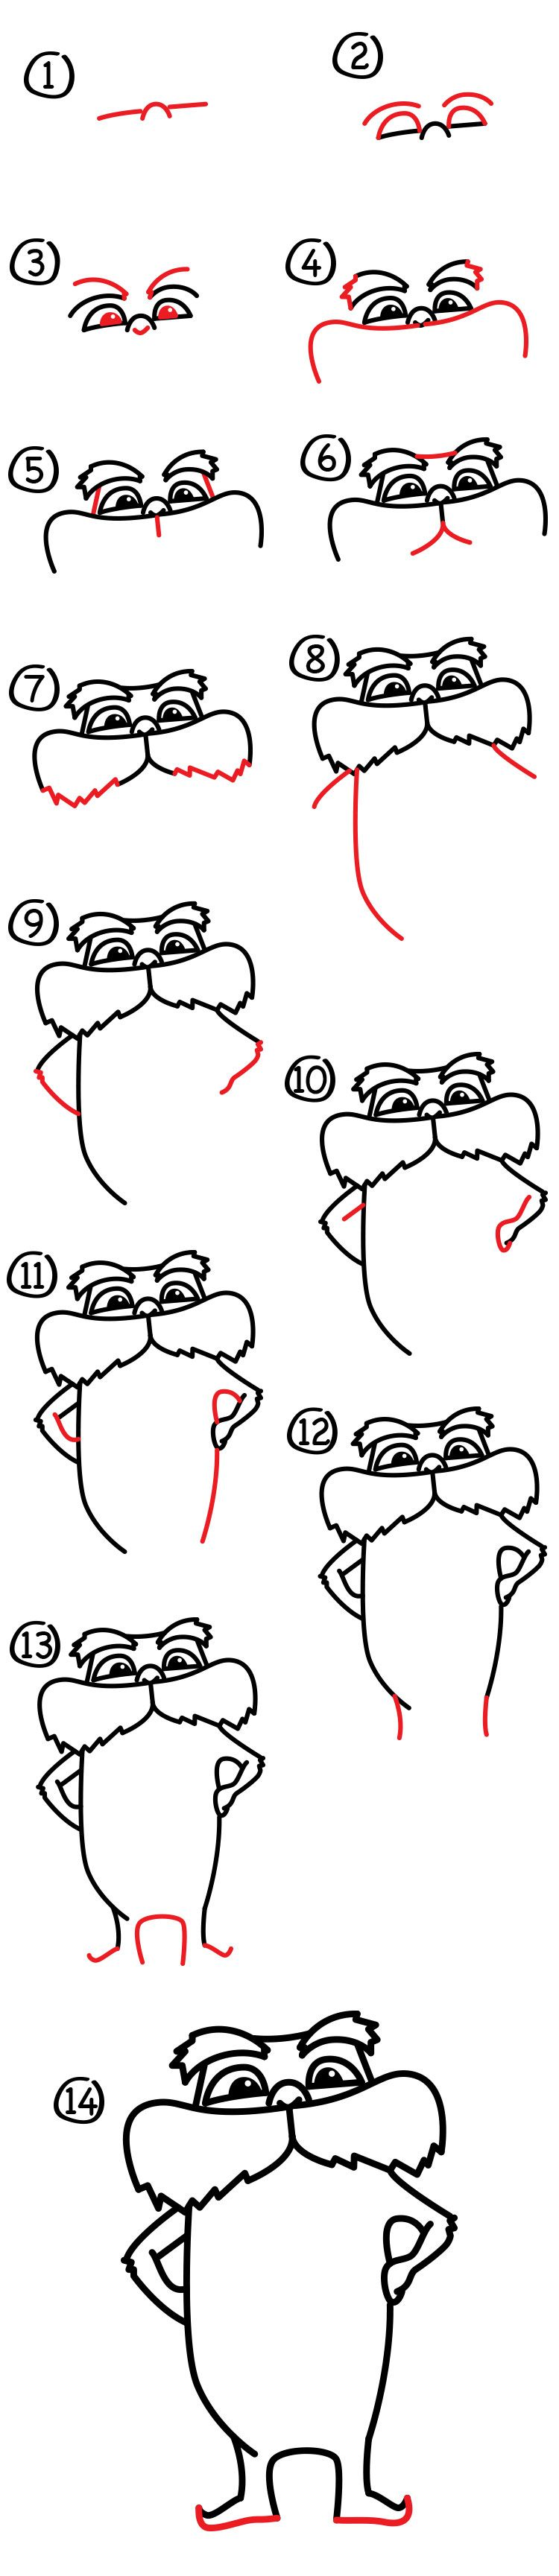 How To Draw The Lorax + Giveaway! - Art For Kids Hub - | Dibujo ...